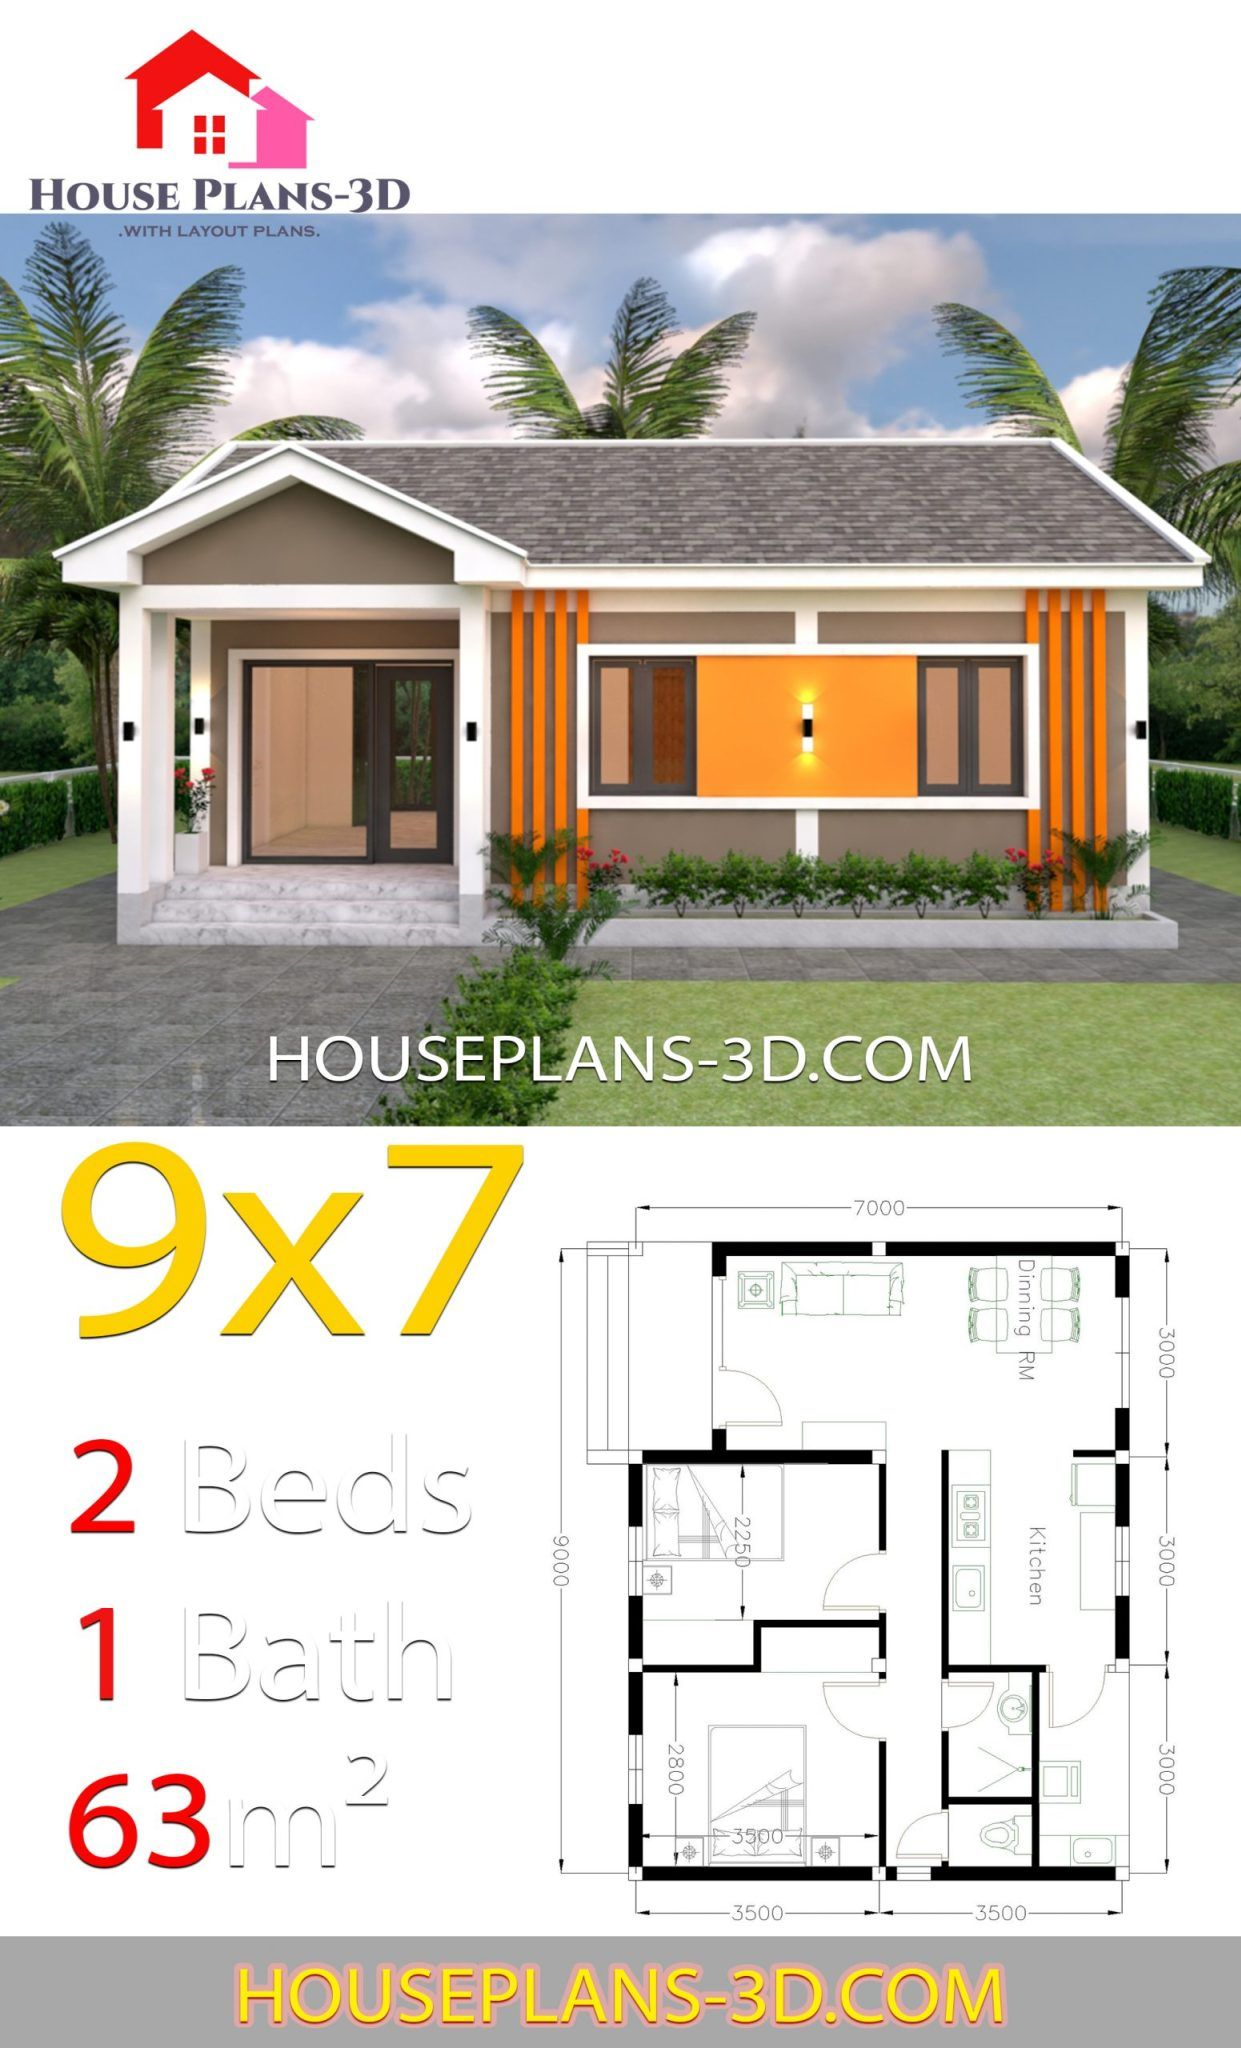 House Design Plans 9x7 With 2 Bedrooms Gable Roof Samphoas Plan Bungalow House Plans House Plans Diy House Plans